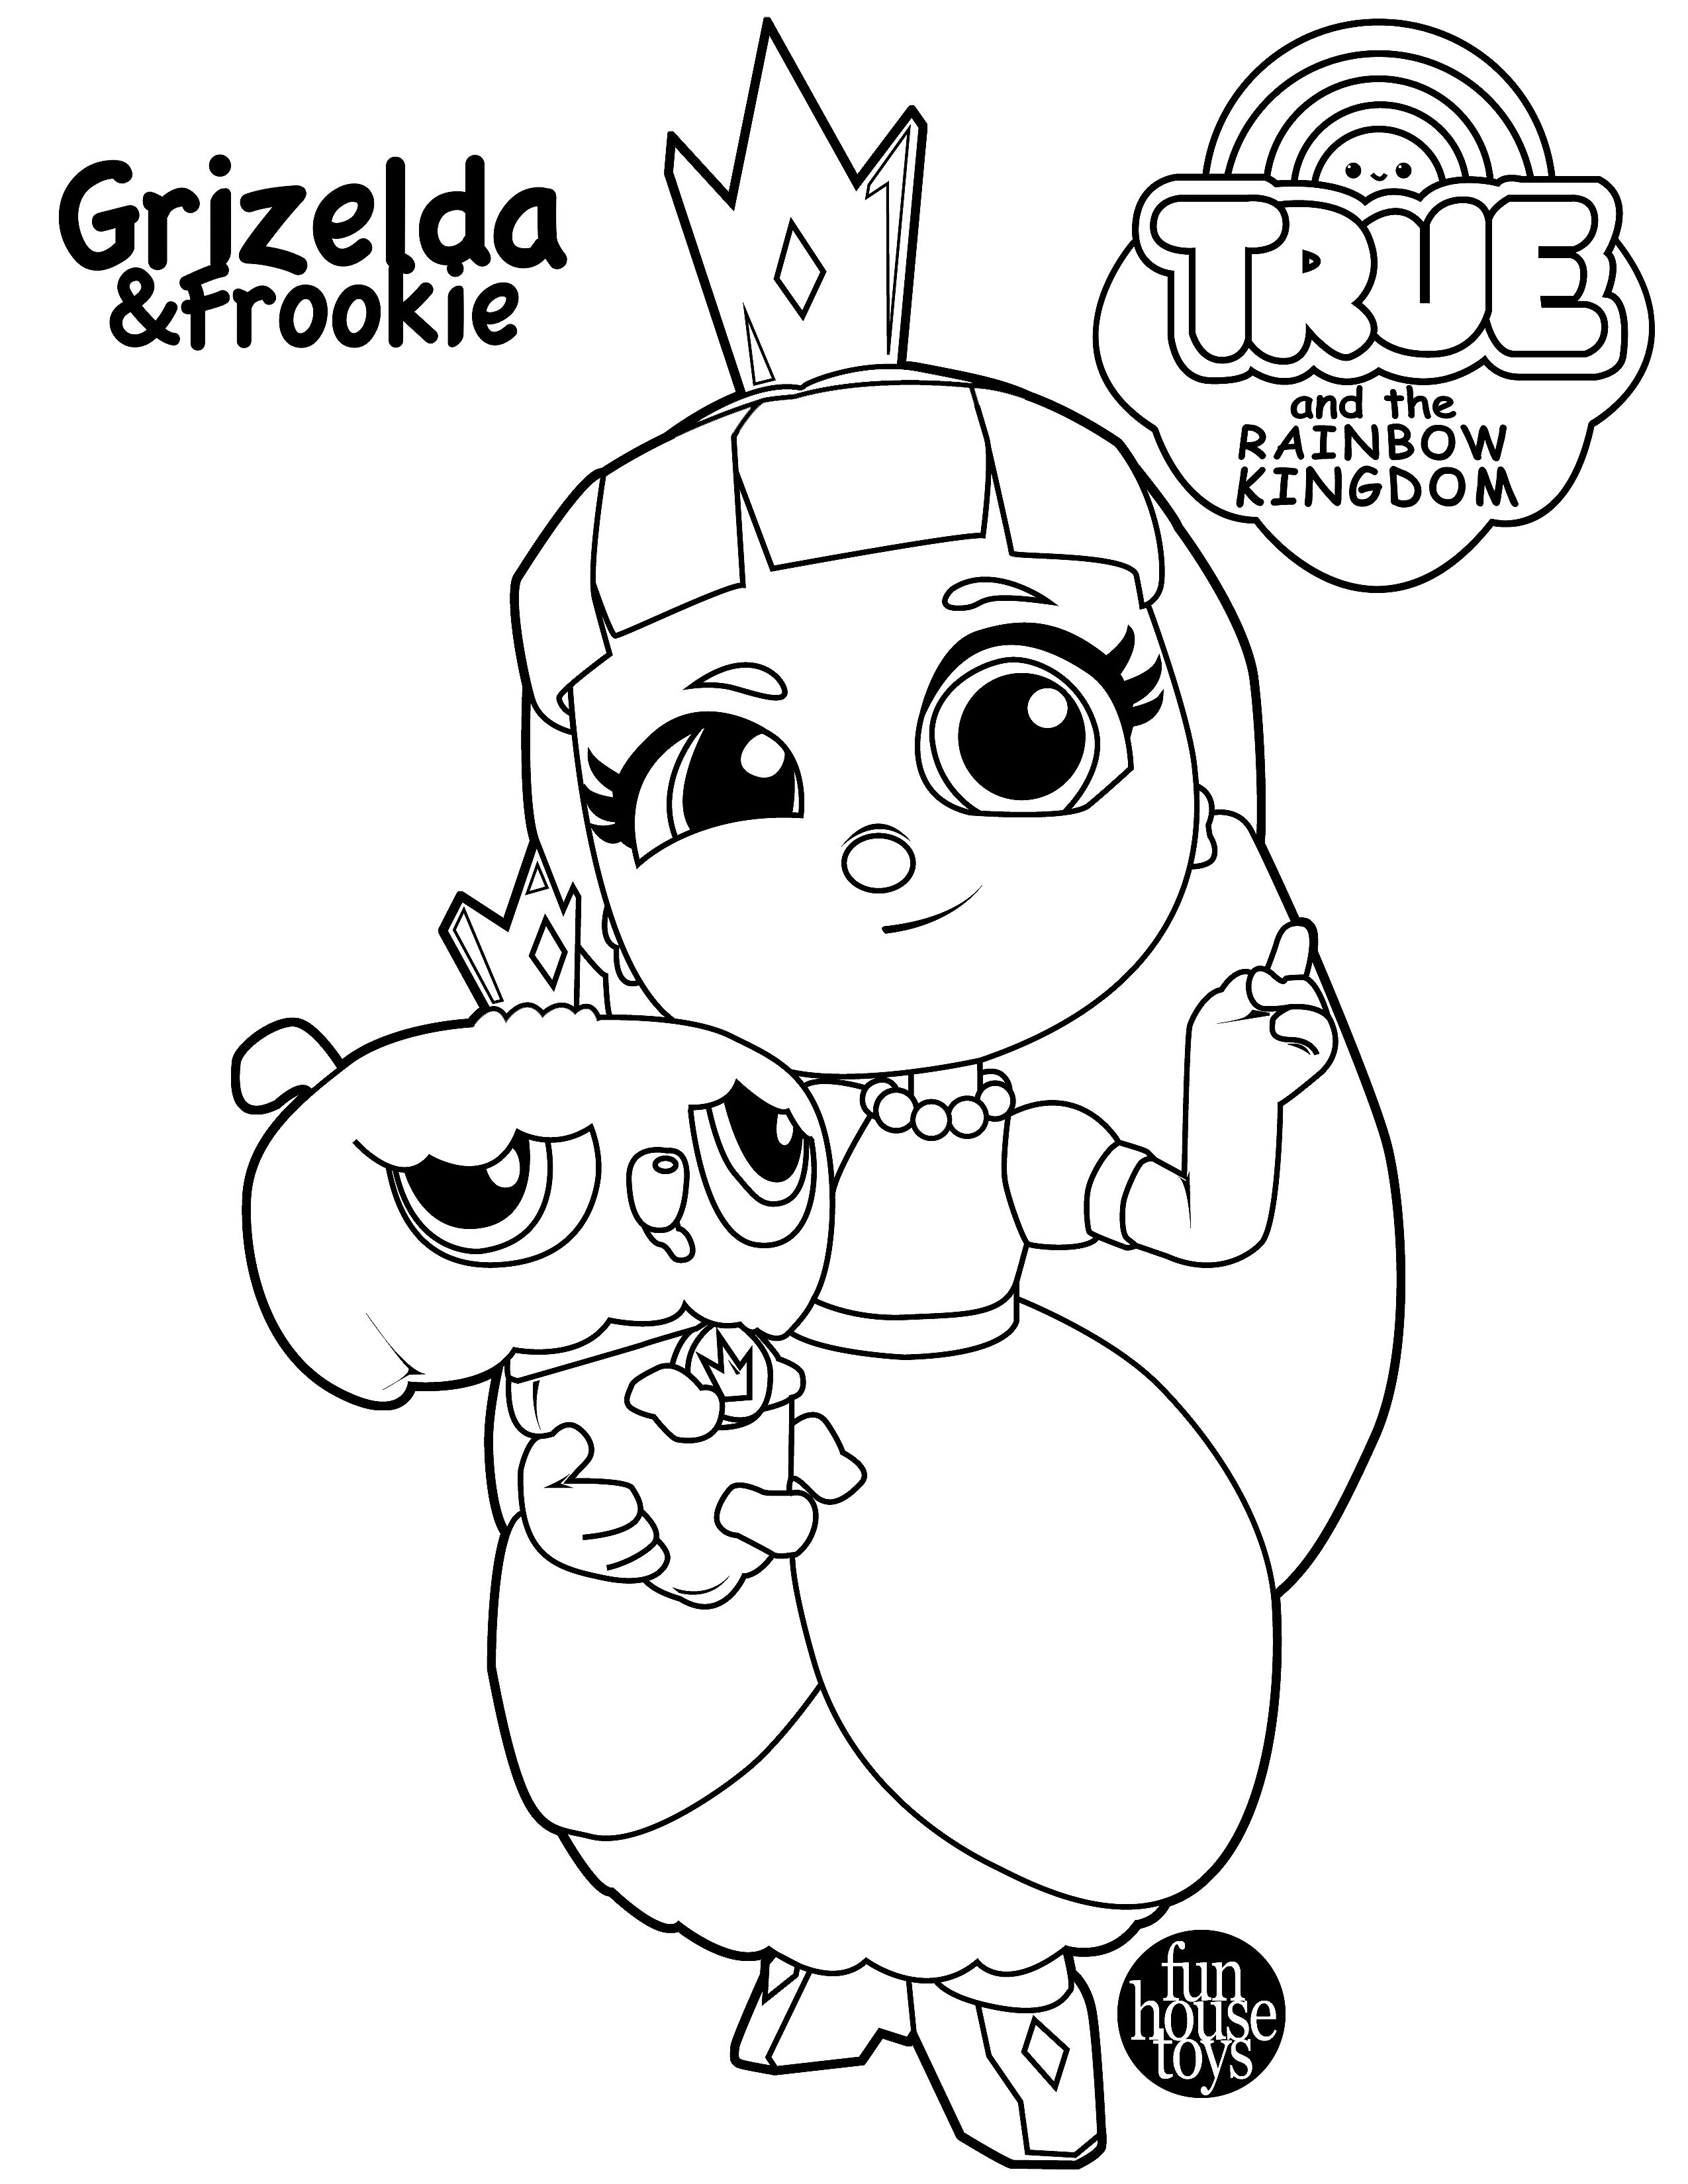 true and the rainbow kingdom coloring pages Pin by Tracy Bonham on embroidery in 2019 | Birthday, Birthday  true and the rainbow kingdom coloring pages